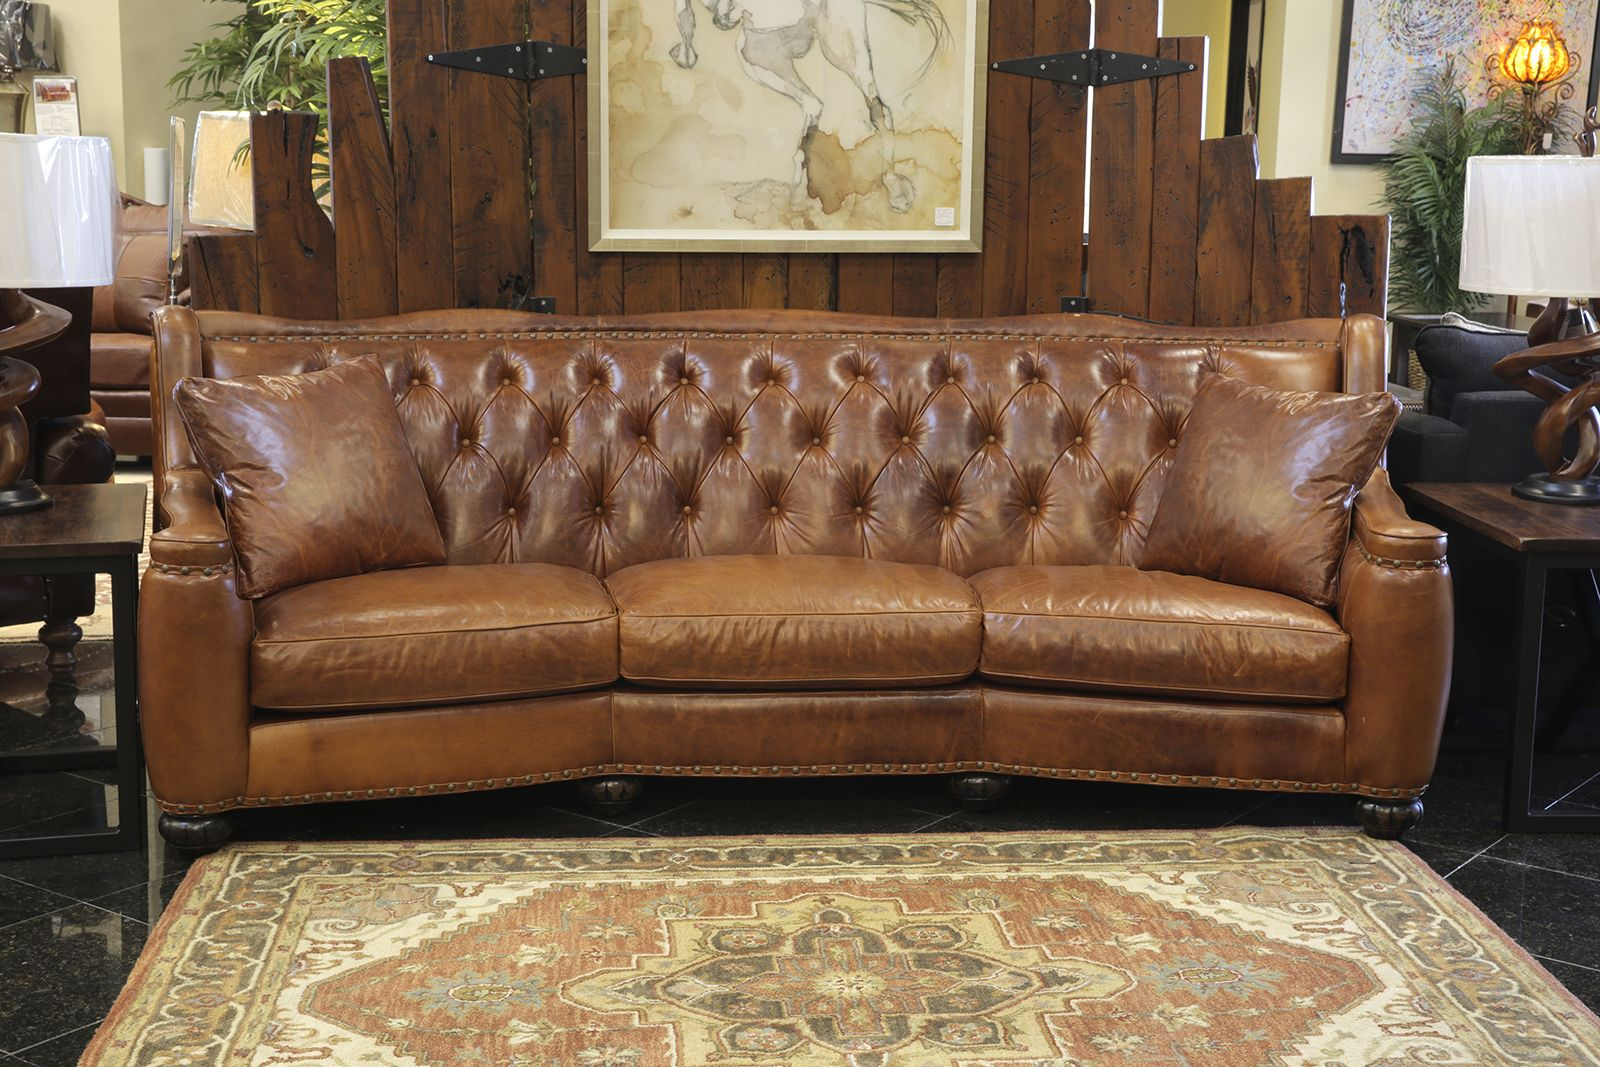 Treat Your Living Room To This High Quality Tufted Full Grain